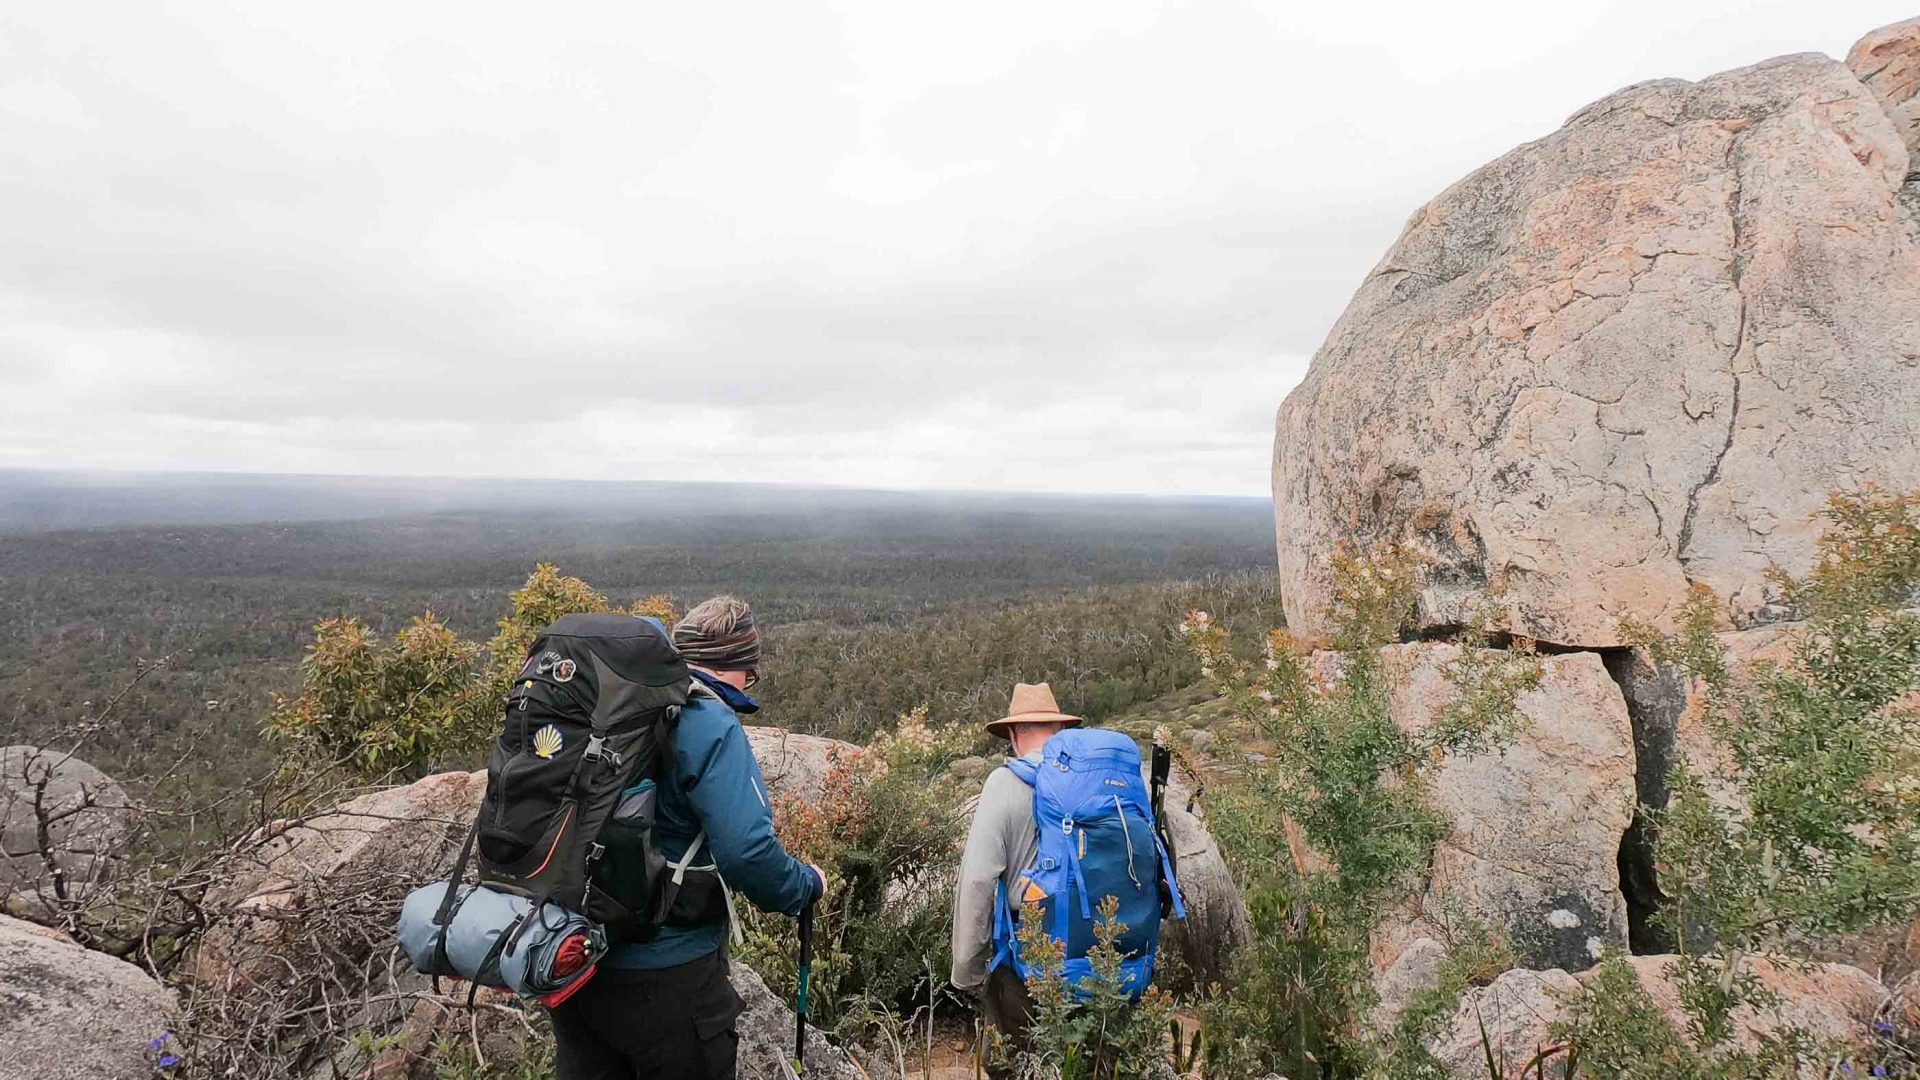 Two people hiking through boulders.